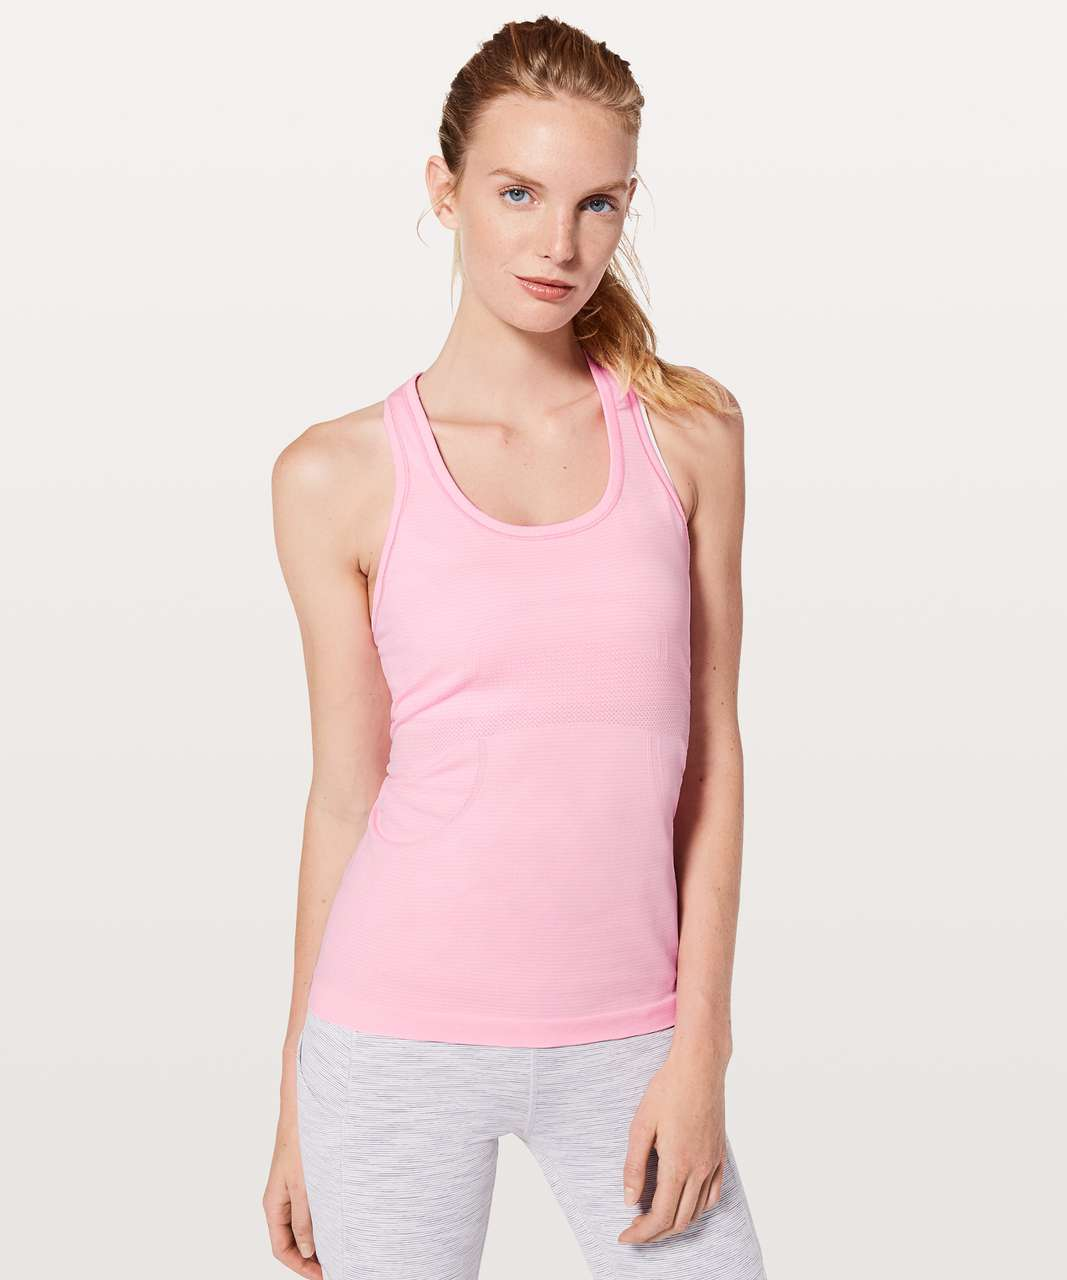 Lululemon Swiftly Tech Racerback - Miami Pink / White